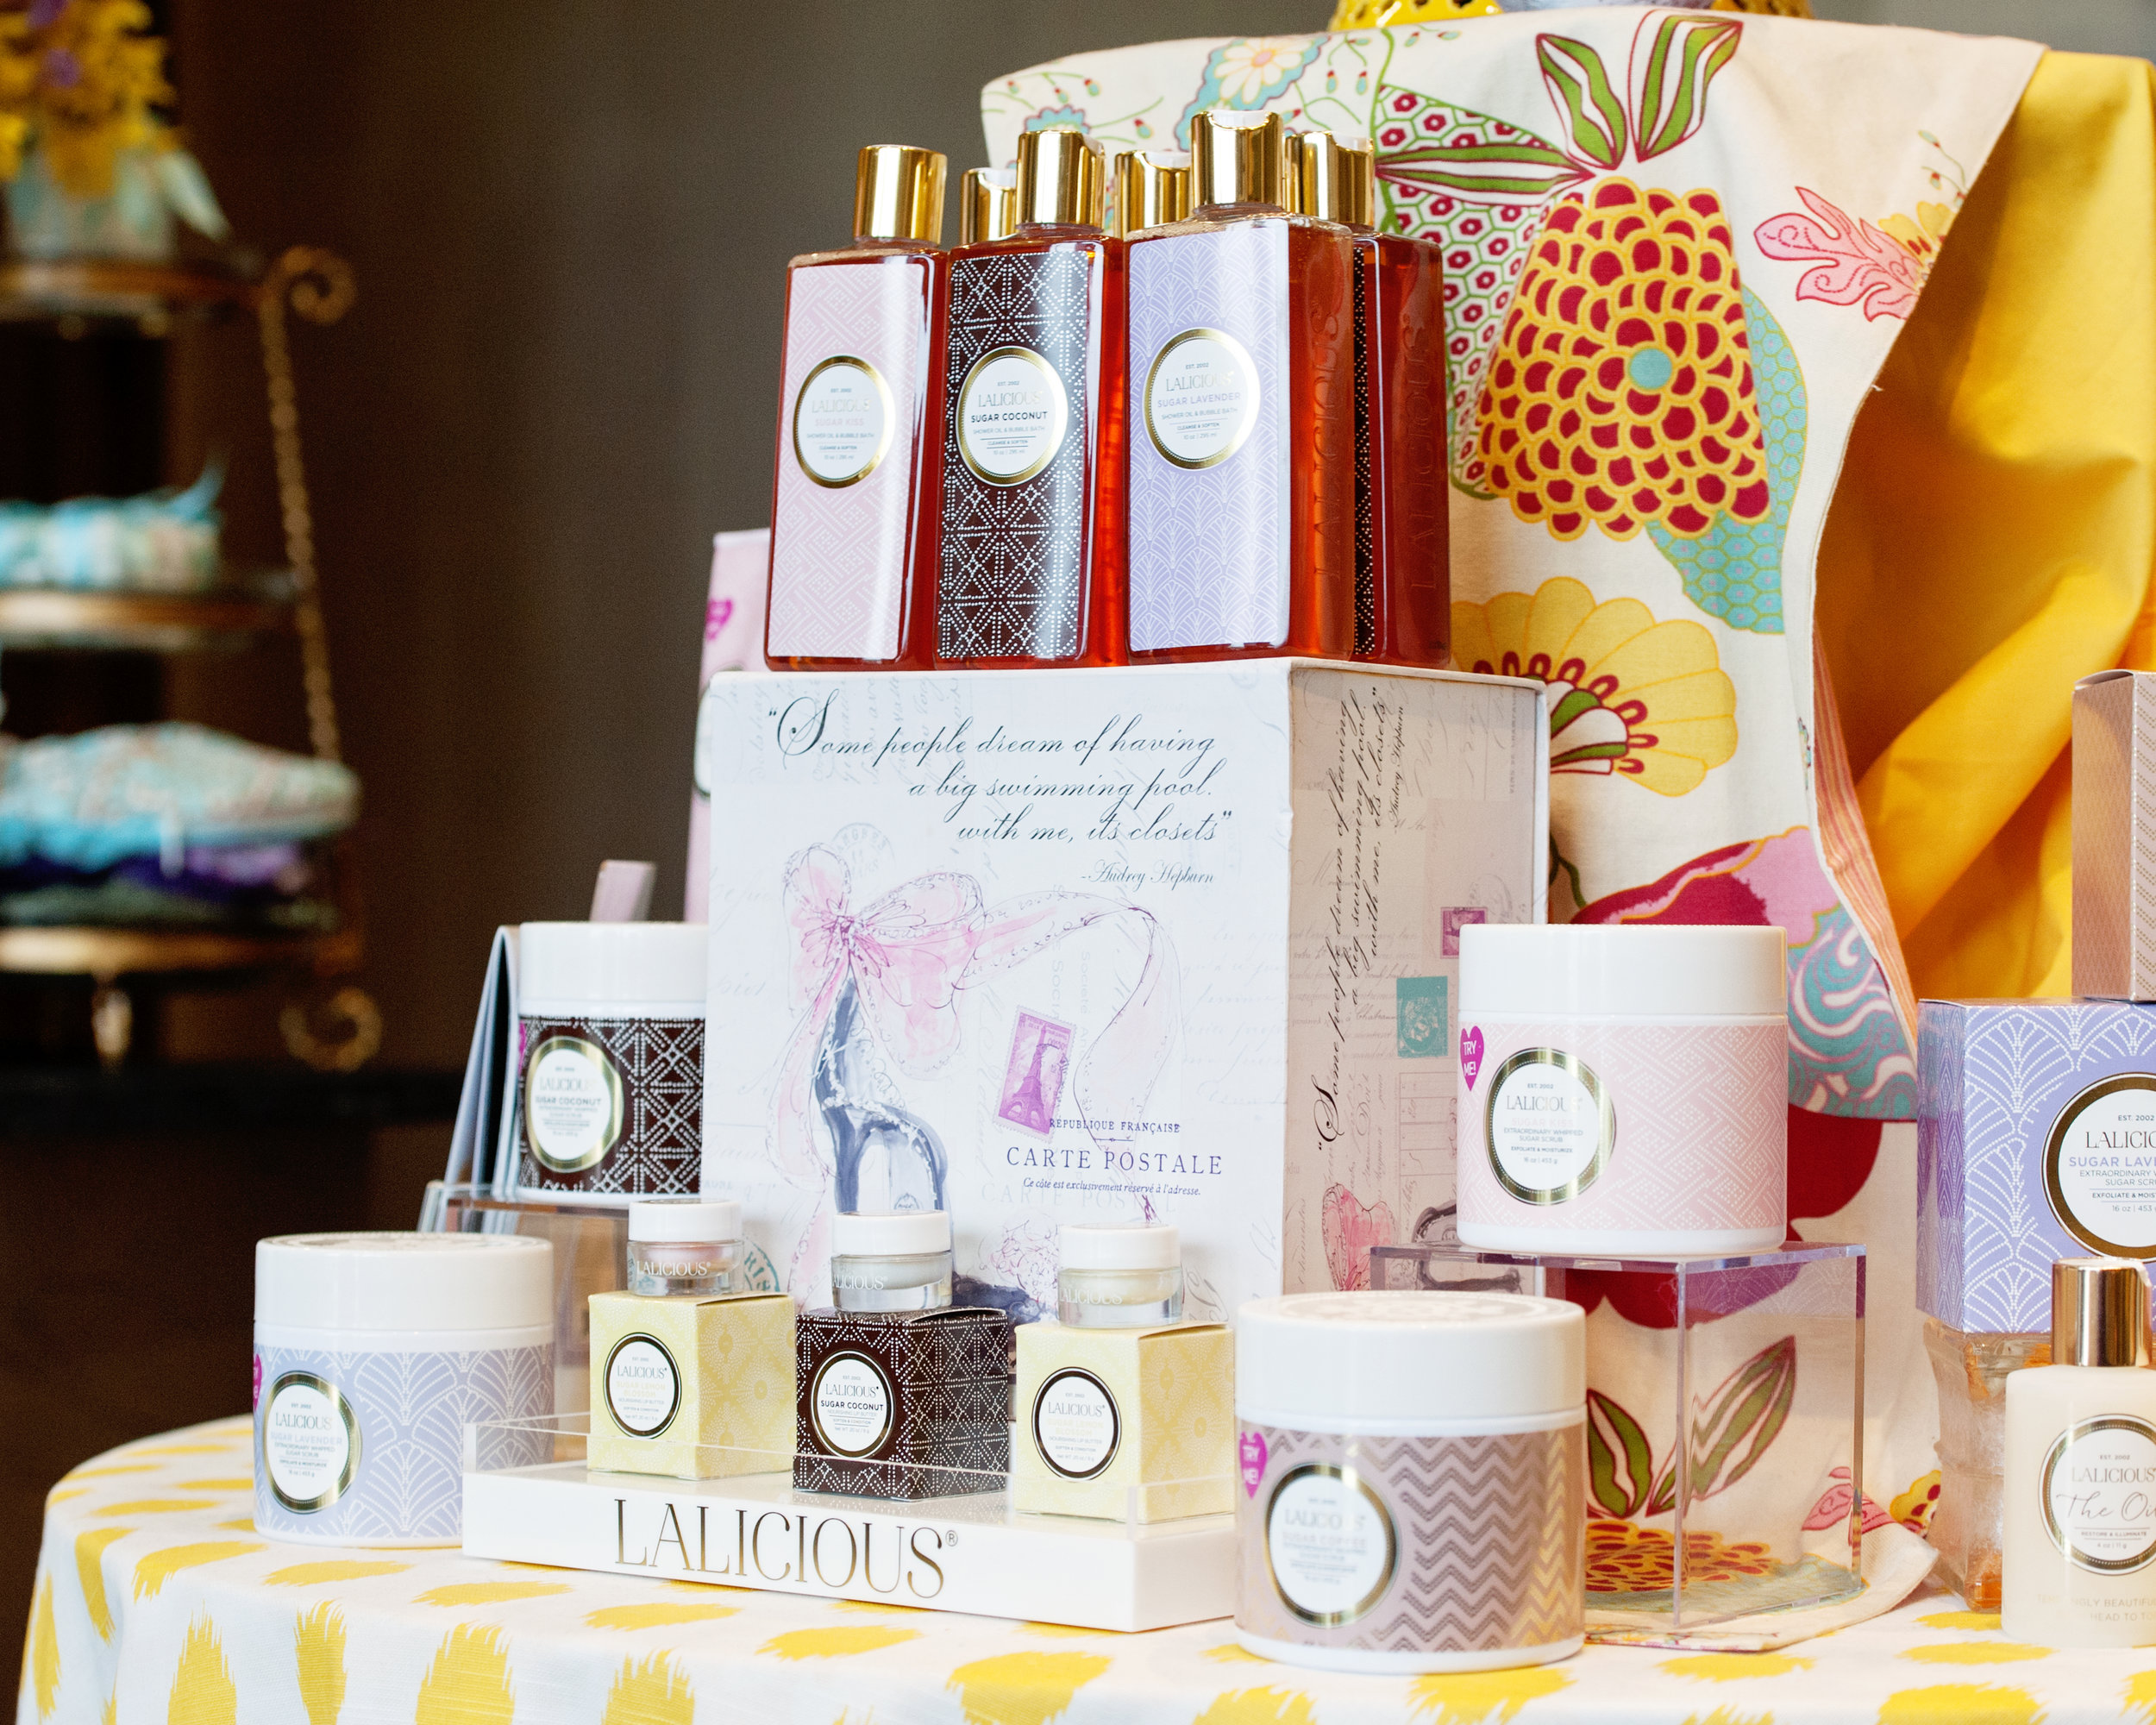 CWS Lalicious Oils and Lotions.jpg